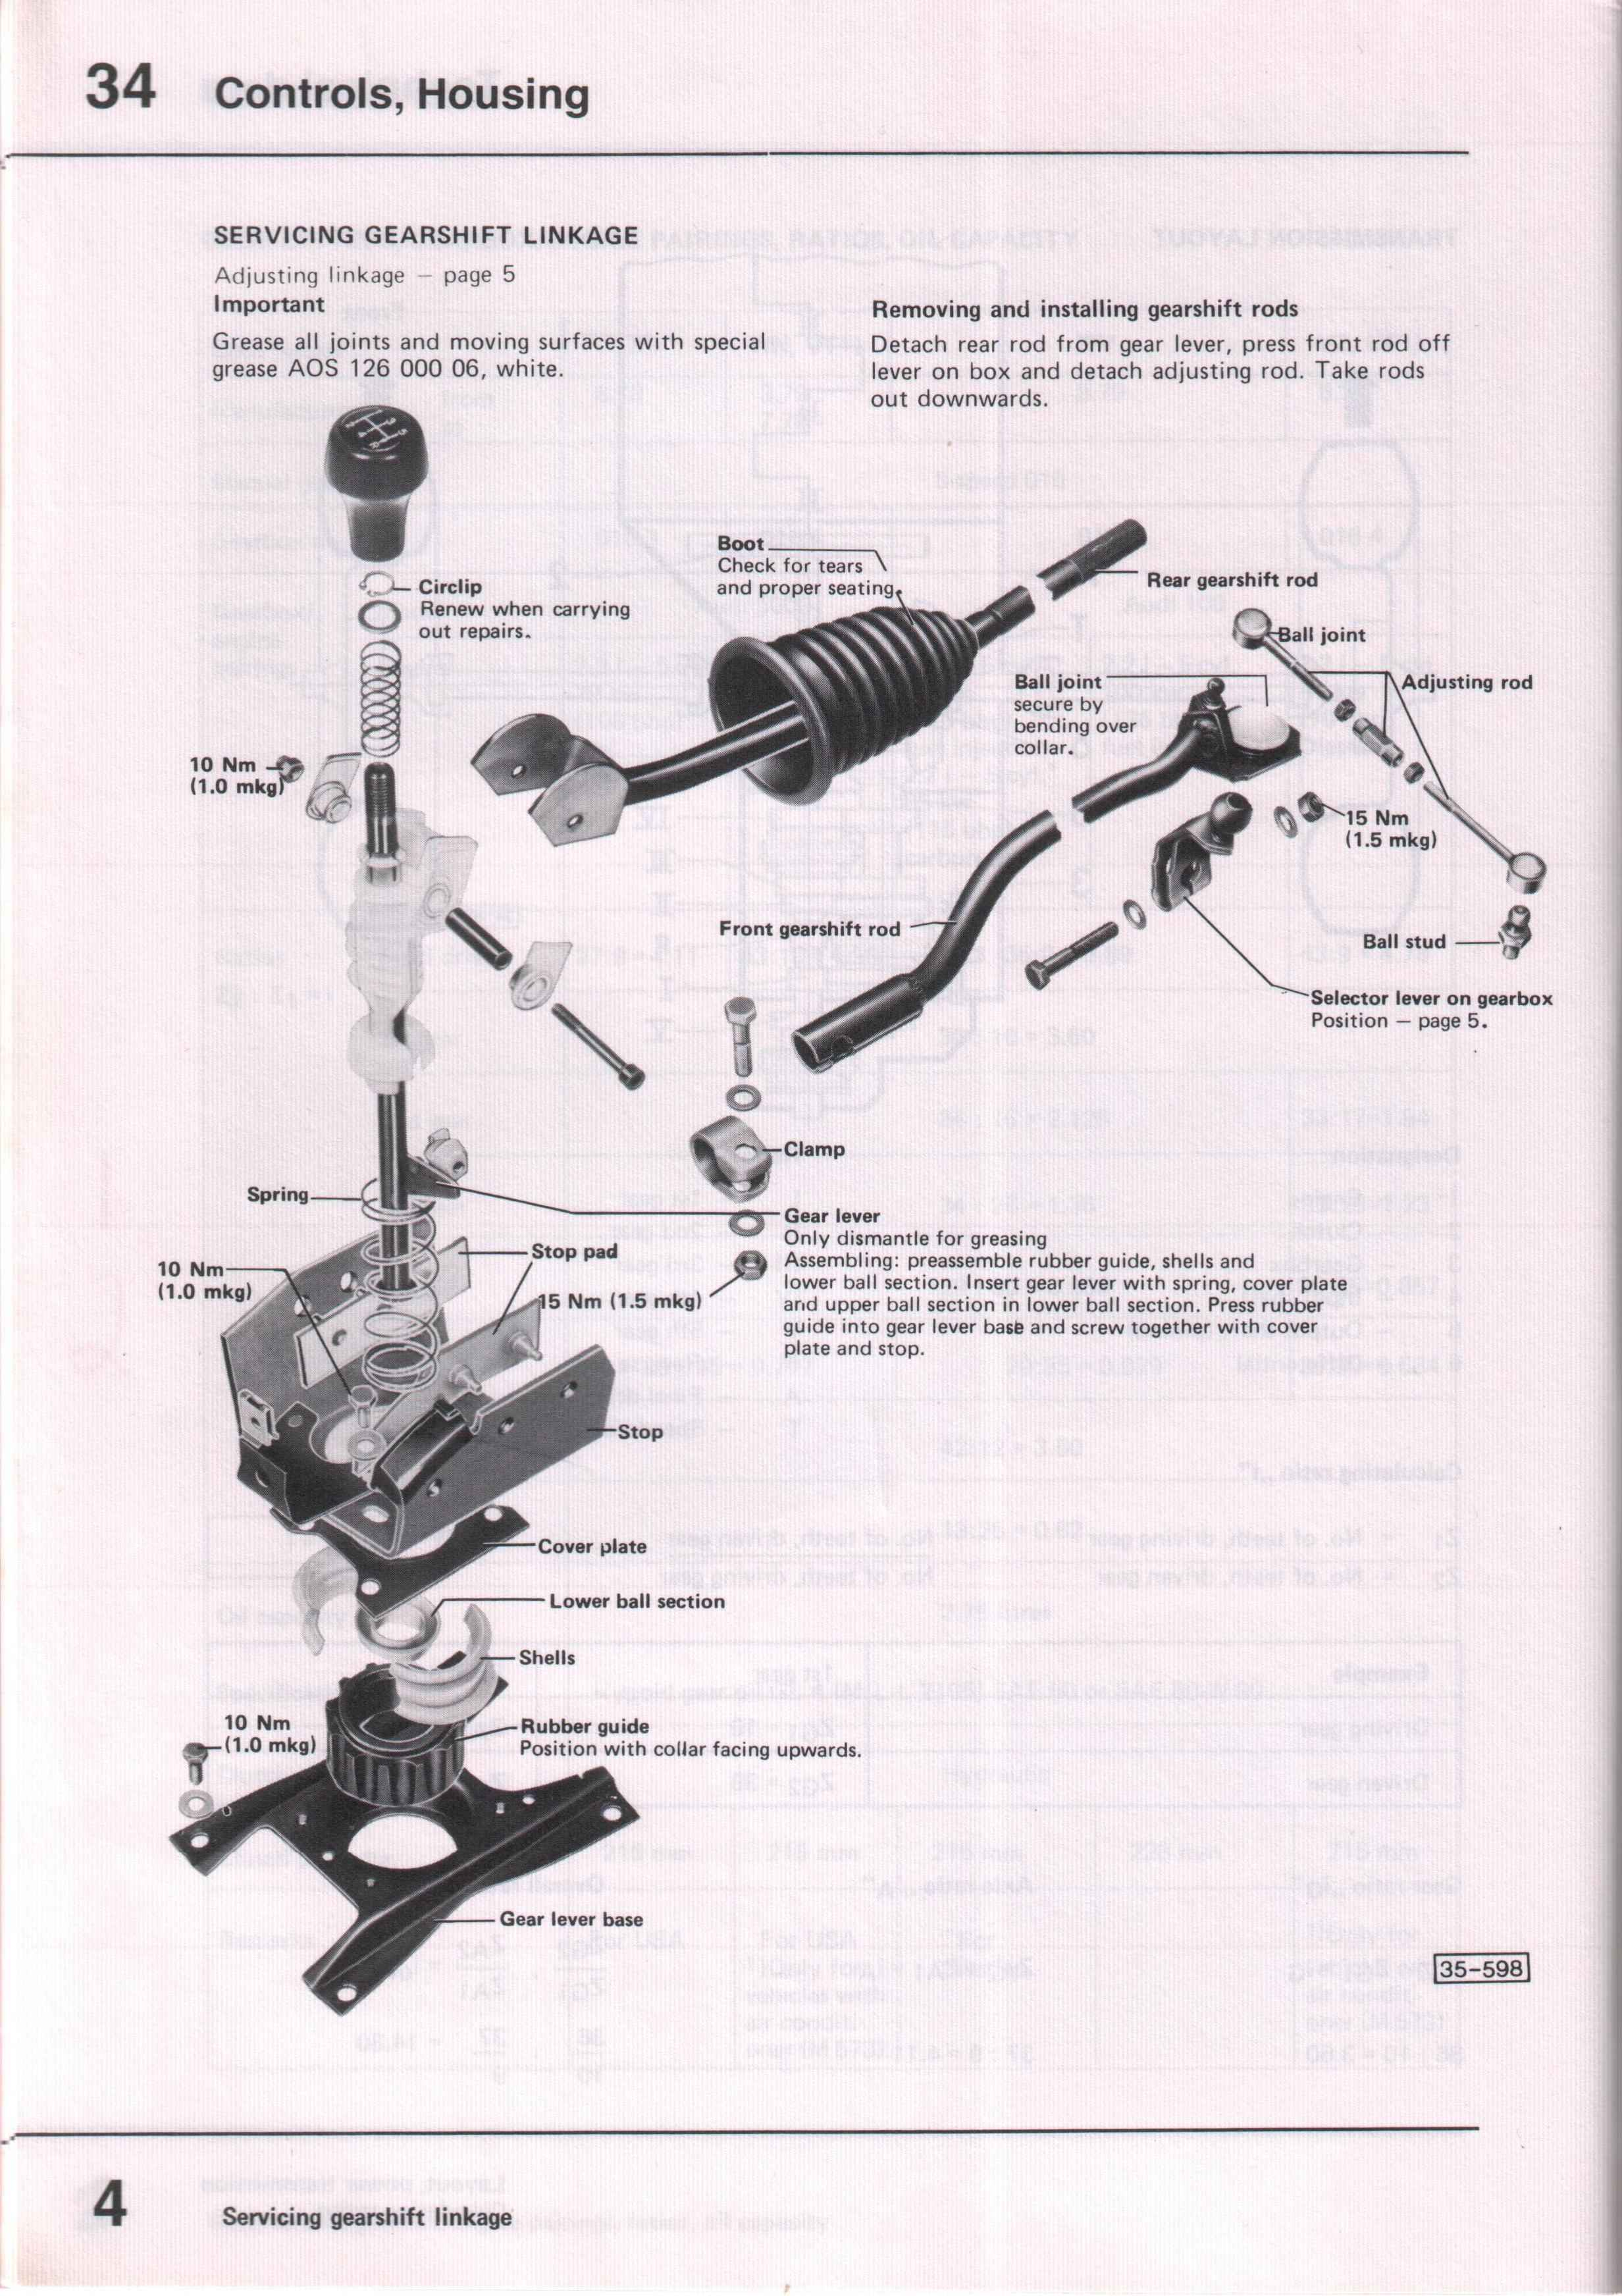 august 1979 audi 100 workshop manual for the 016 5 speed gearbox rh t85q com audi 100 workshop manual free download audi 100 workshop manual free download